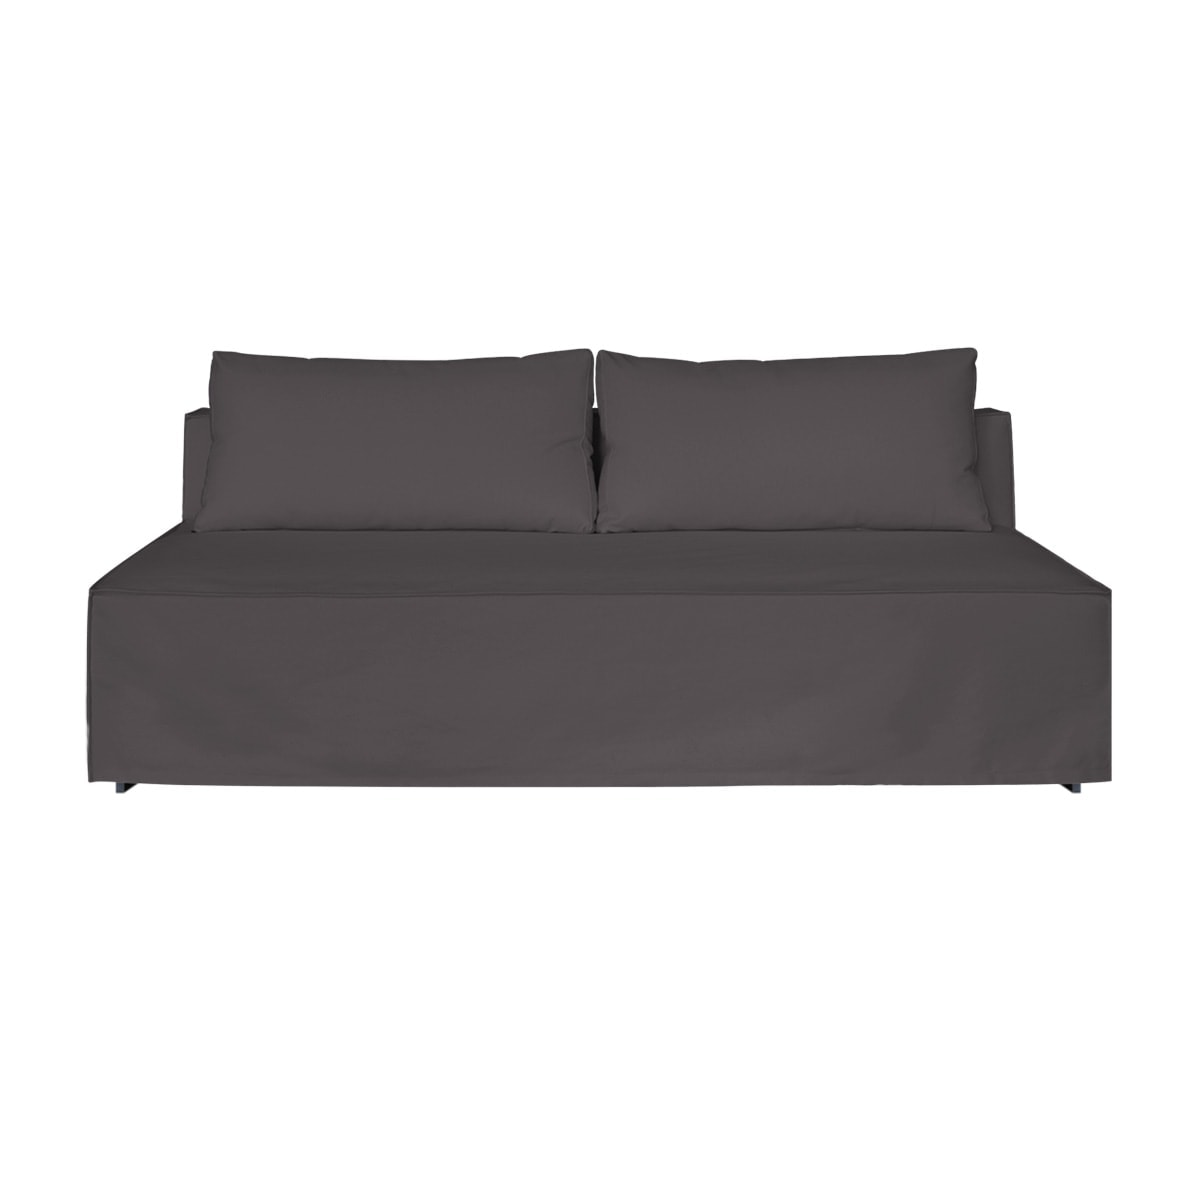 Futon sofa cama barcelona for Futon sofa cama plegable